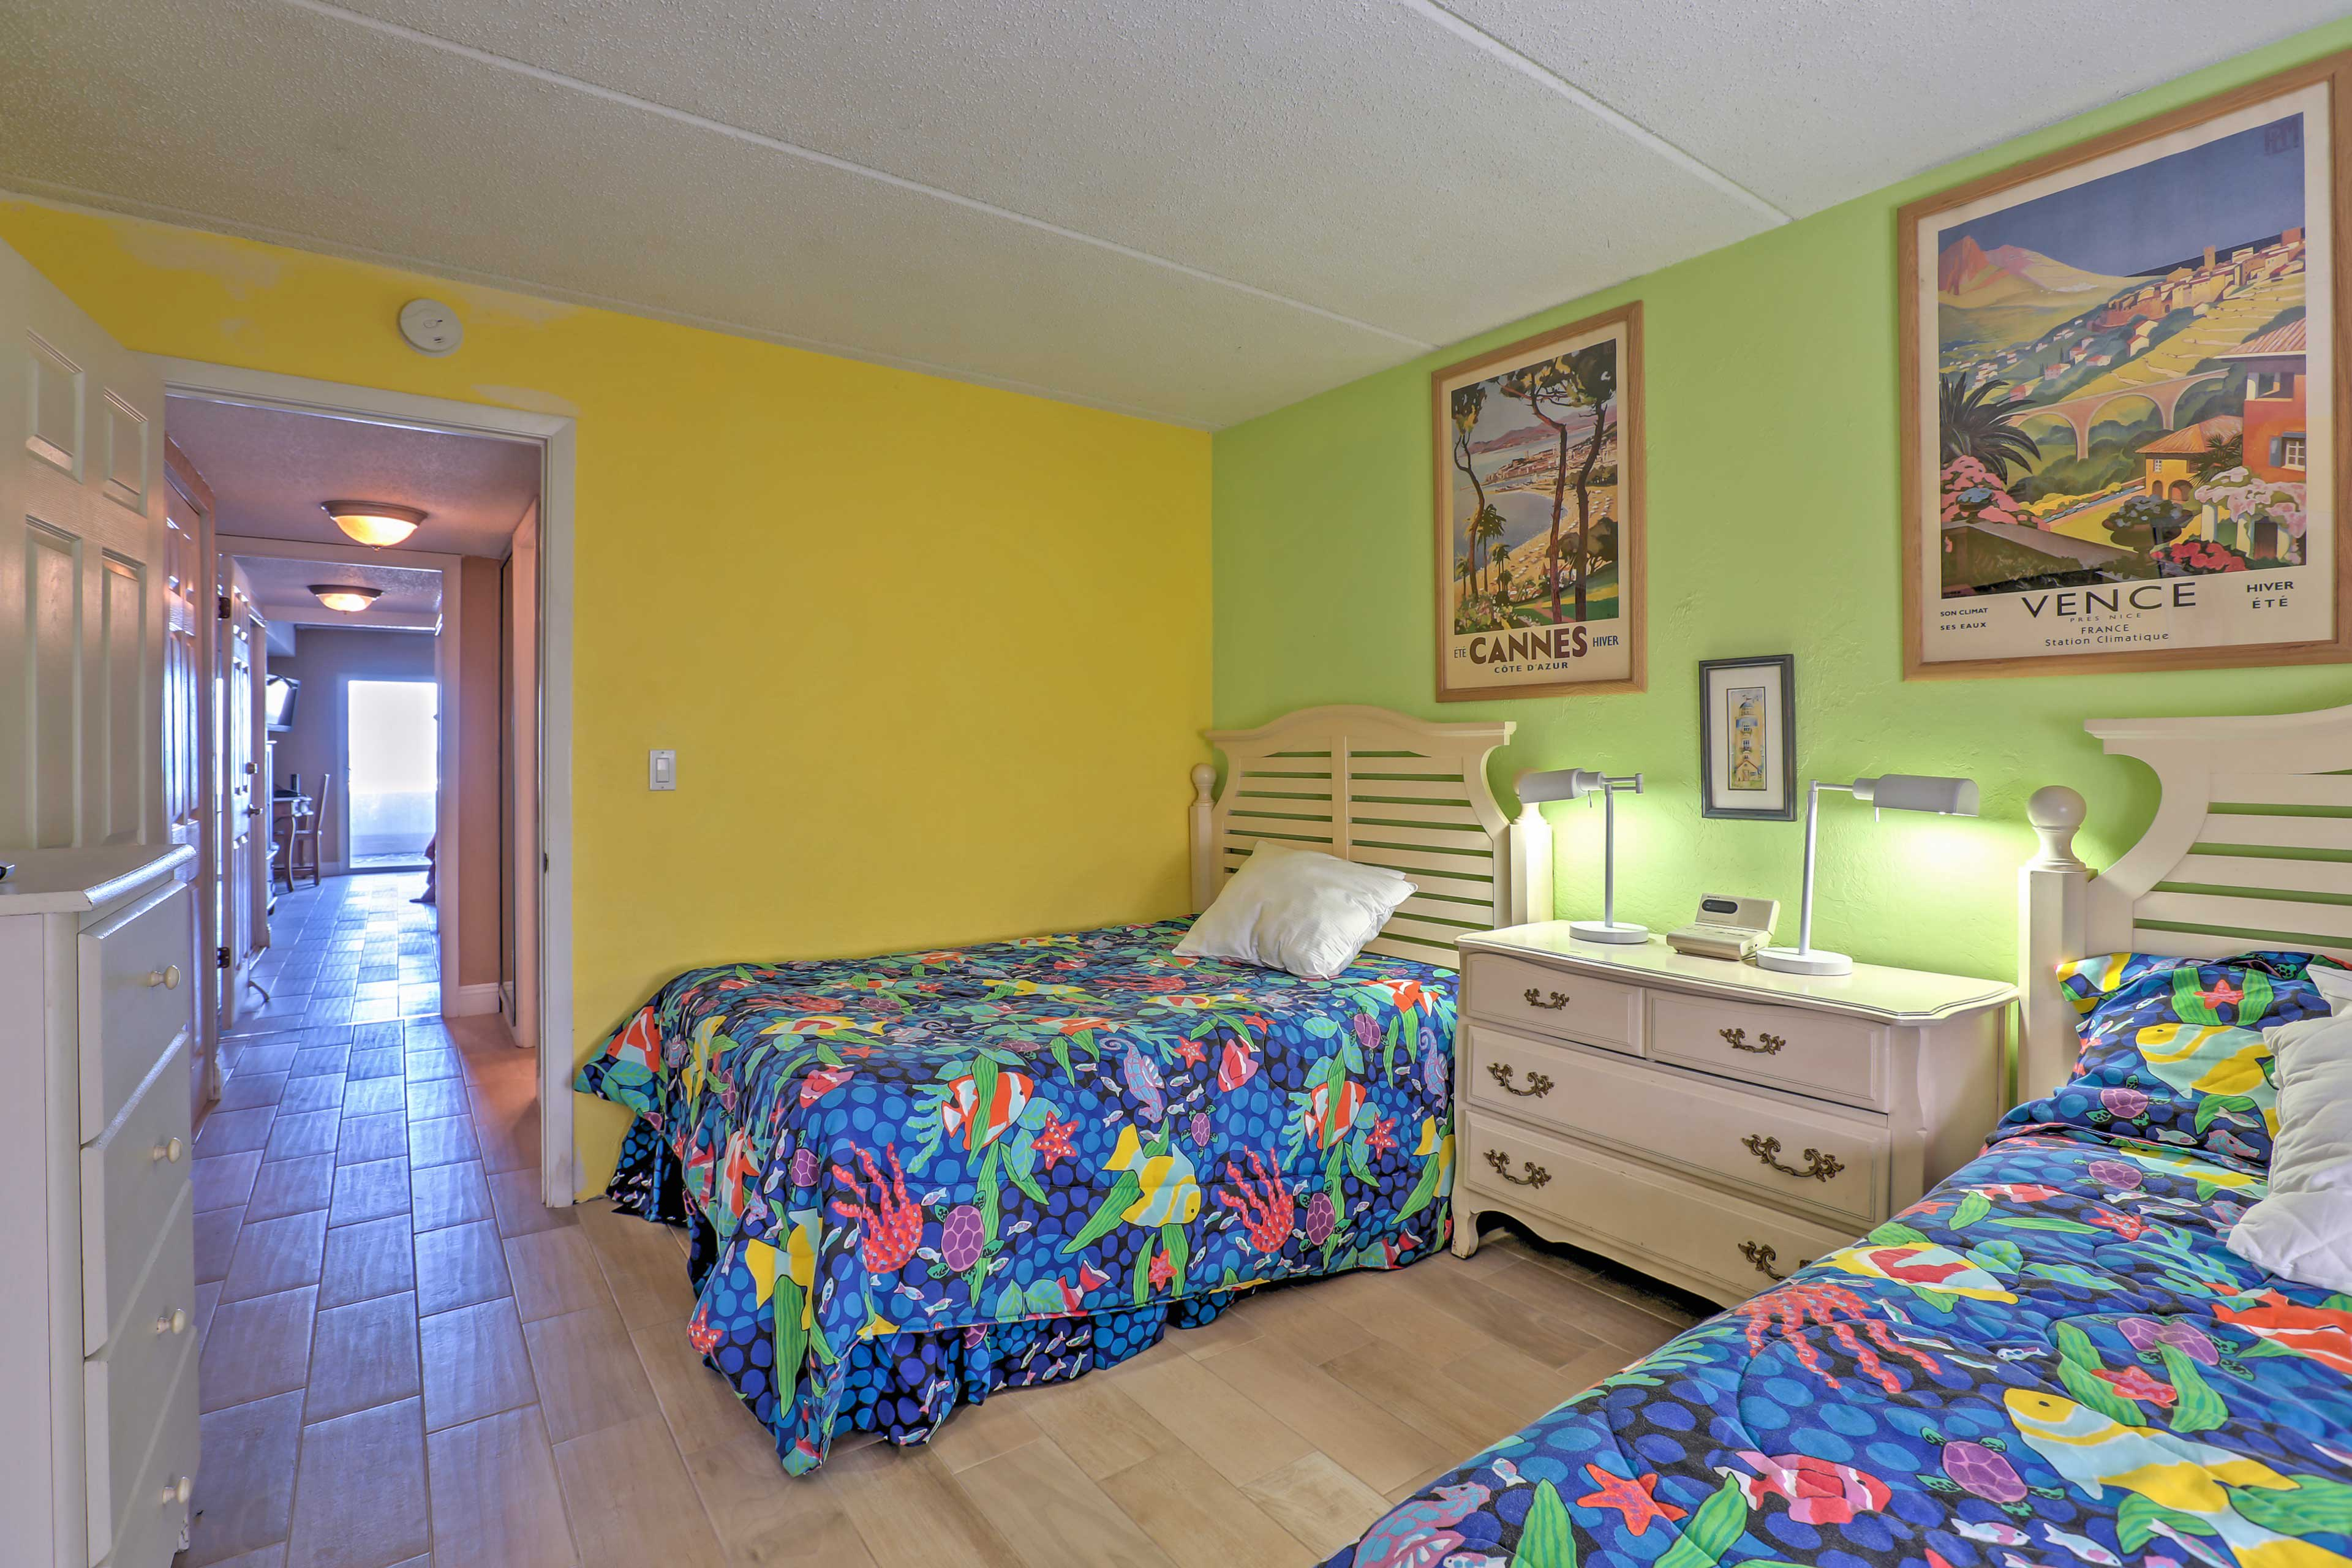 The second bedroom features 2 comfortable full beds.